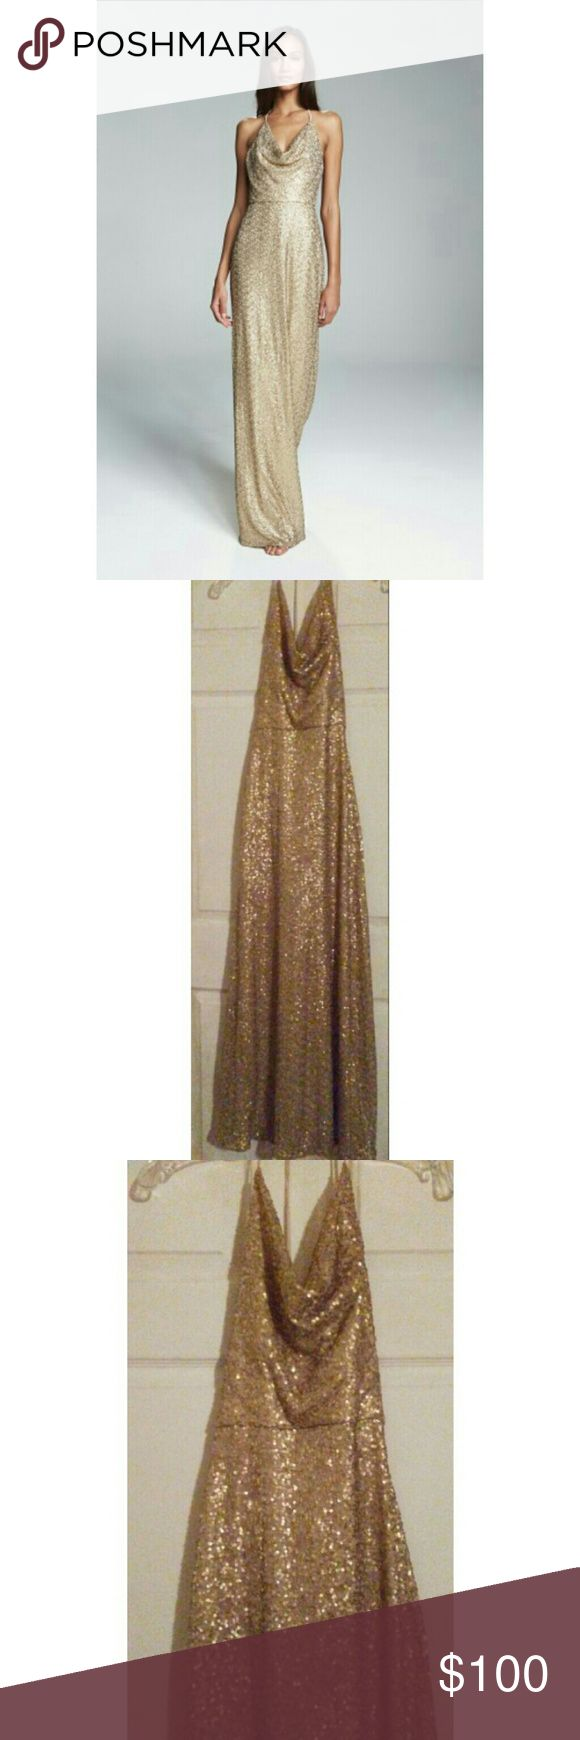 GOLD SEQUIN HALTER DRESS 🎊1 DAYSALE🎊 Gold Sequin Amsale Honora long Evening Gown. Has a cow neckline, backless halter. Great formal wedding bridesmaid dress. Similar to Adrianna Papell. Amsale Dresses Wedding